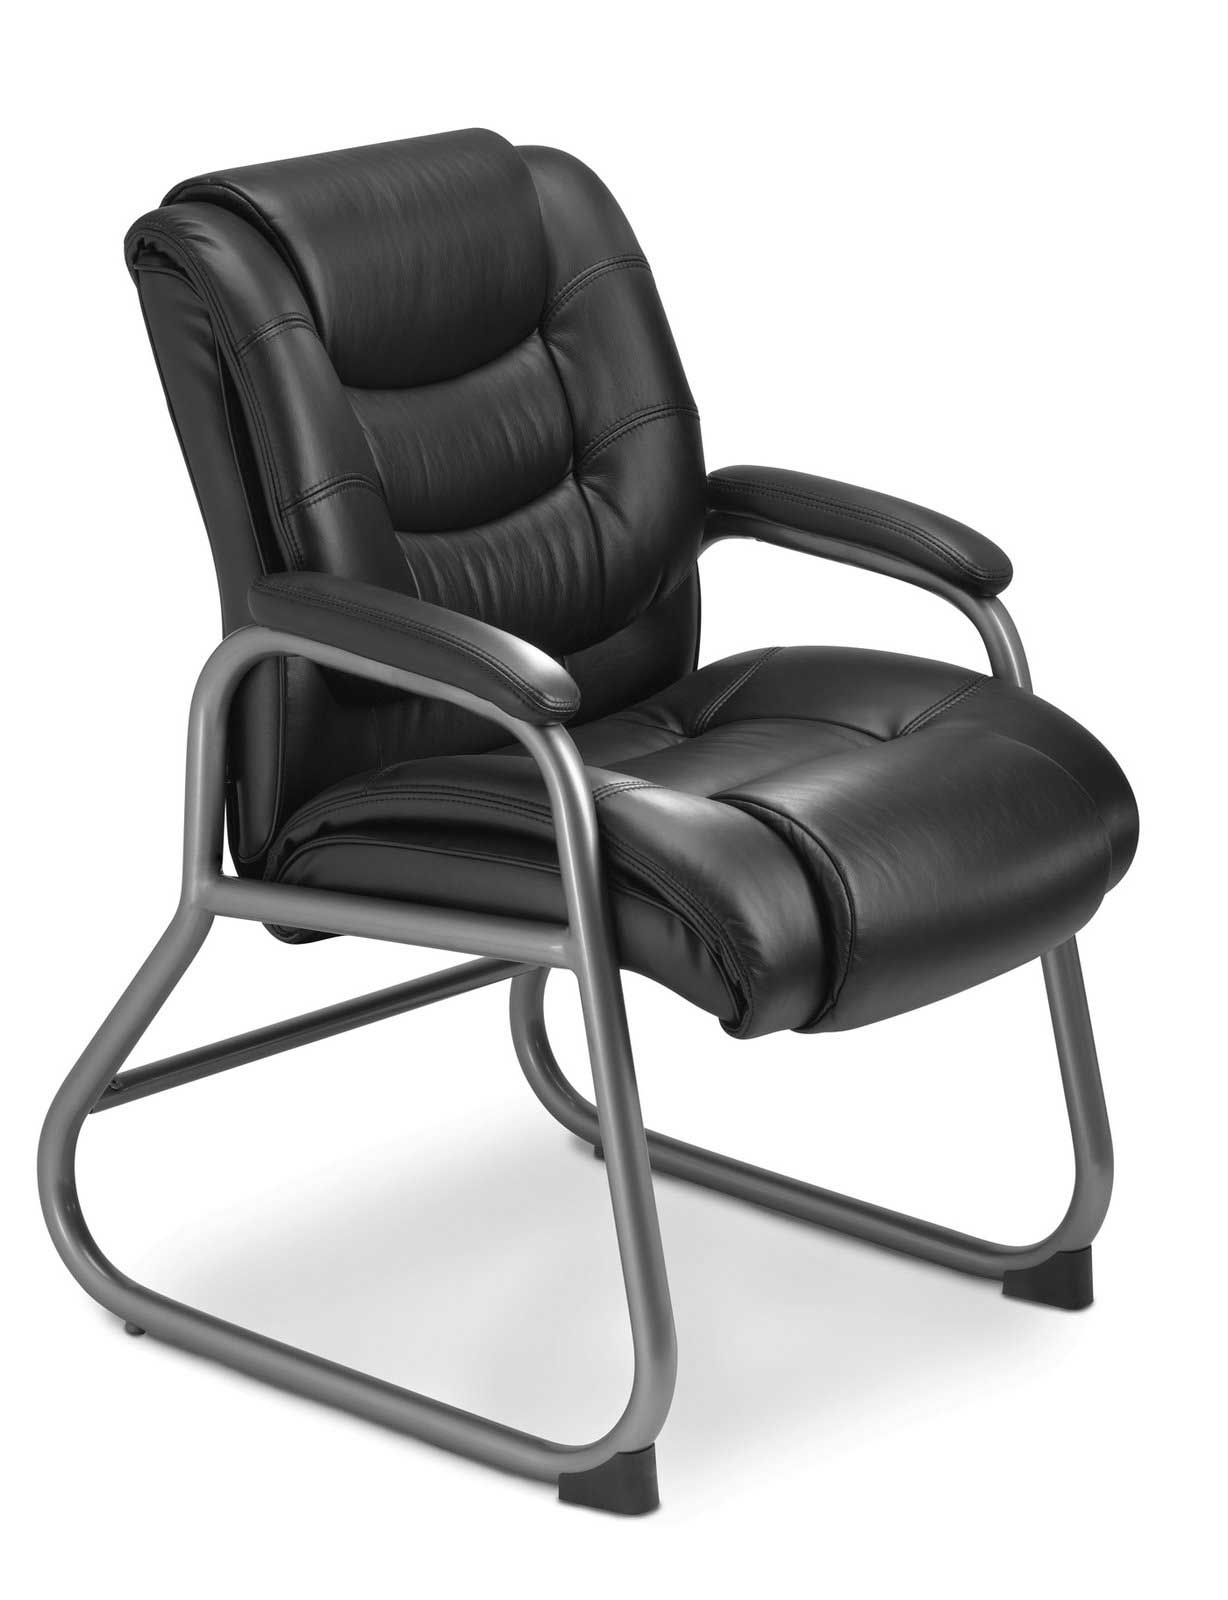 Most Comfortable Desk Chair Office Chairs Most Comfortable Office Chairs